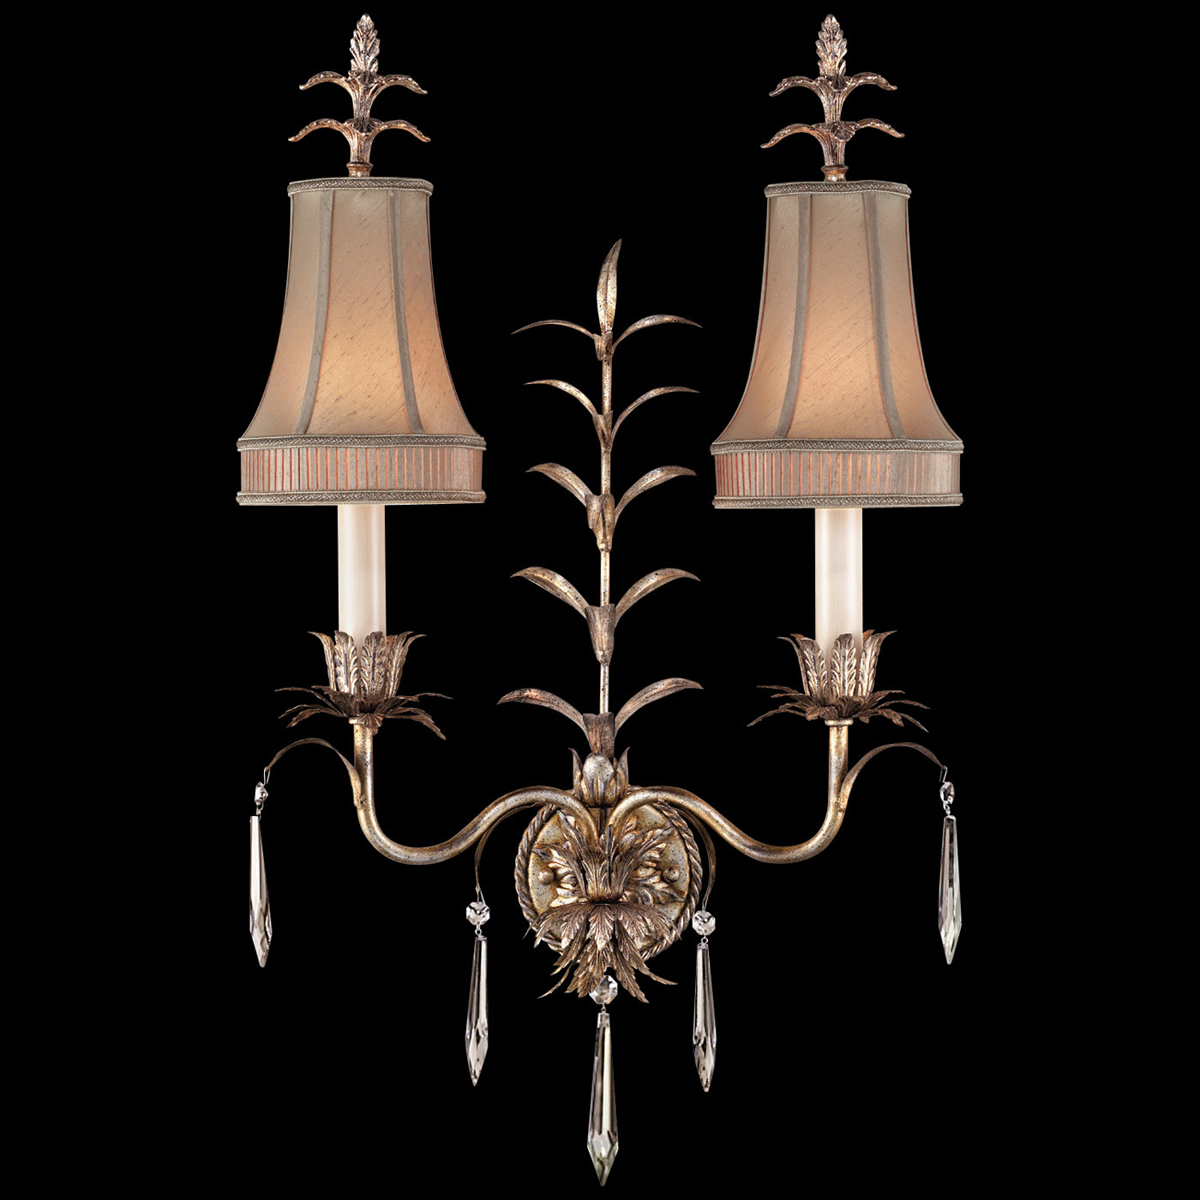 Wall Lamps Drawing : Fine Art Lamps (409050) Pastiche 2-Light Wall Sconce